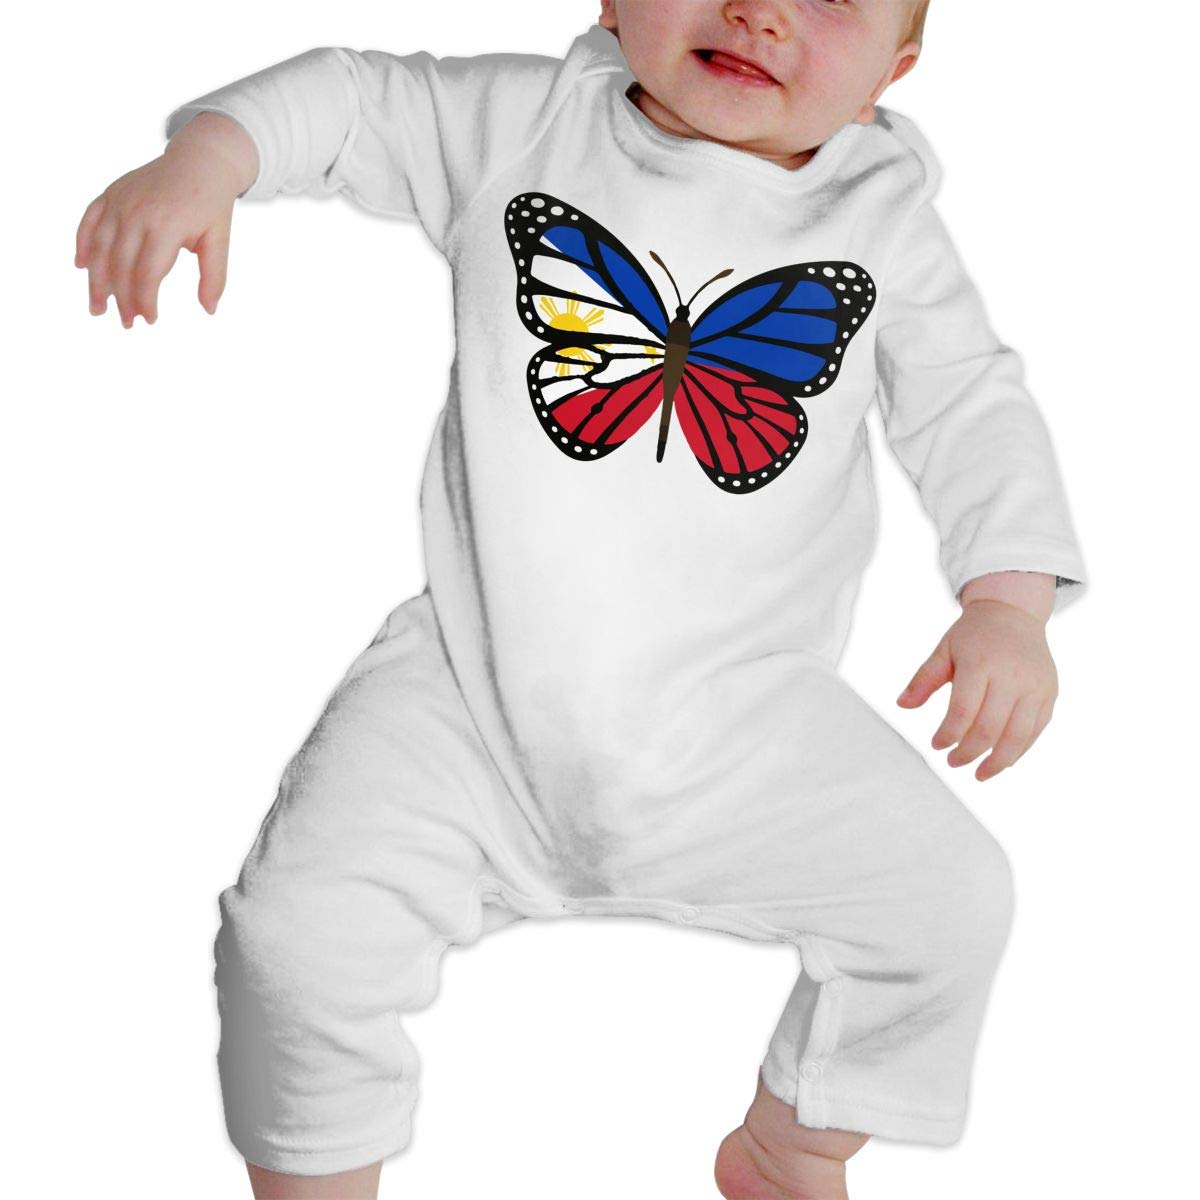 Mri-le1 Baby Boy Girl Jumpsuit ButterFlag Philippines Flag Infant Long Sleeve Romper Jumpsuit